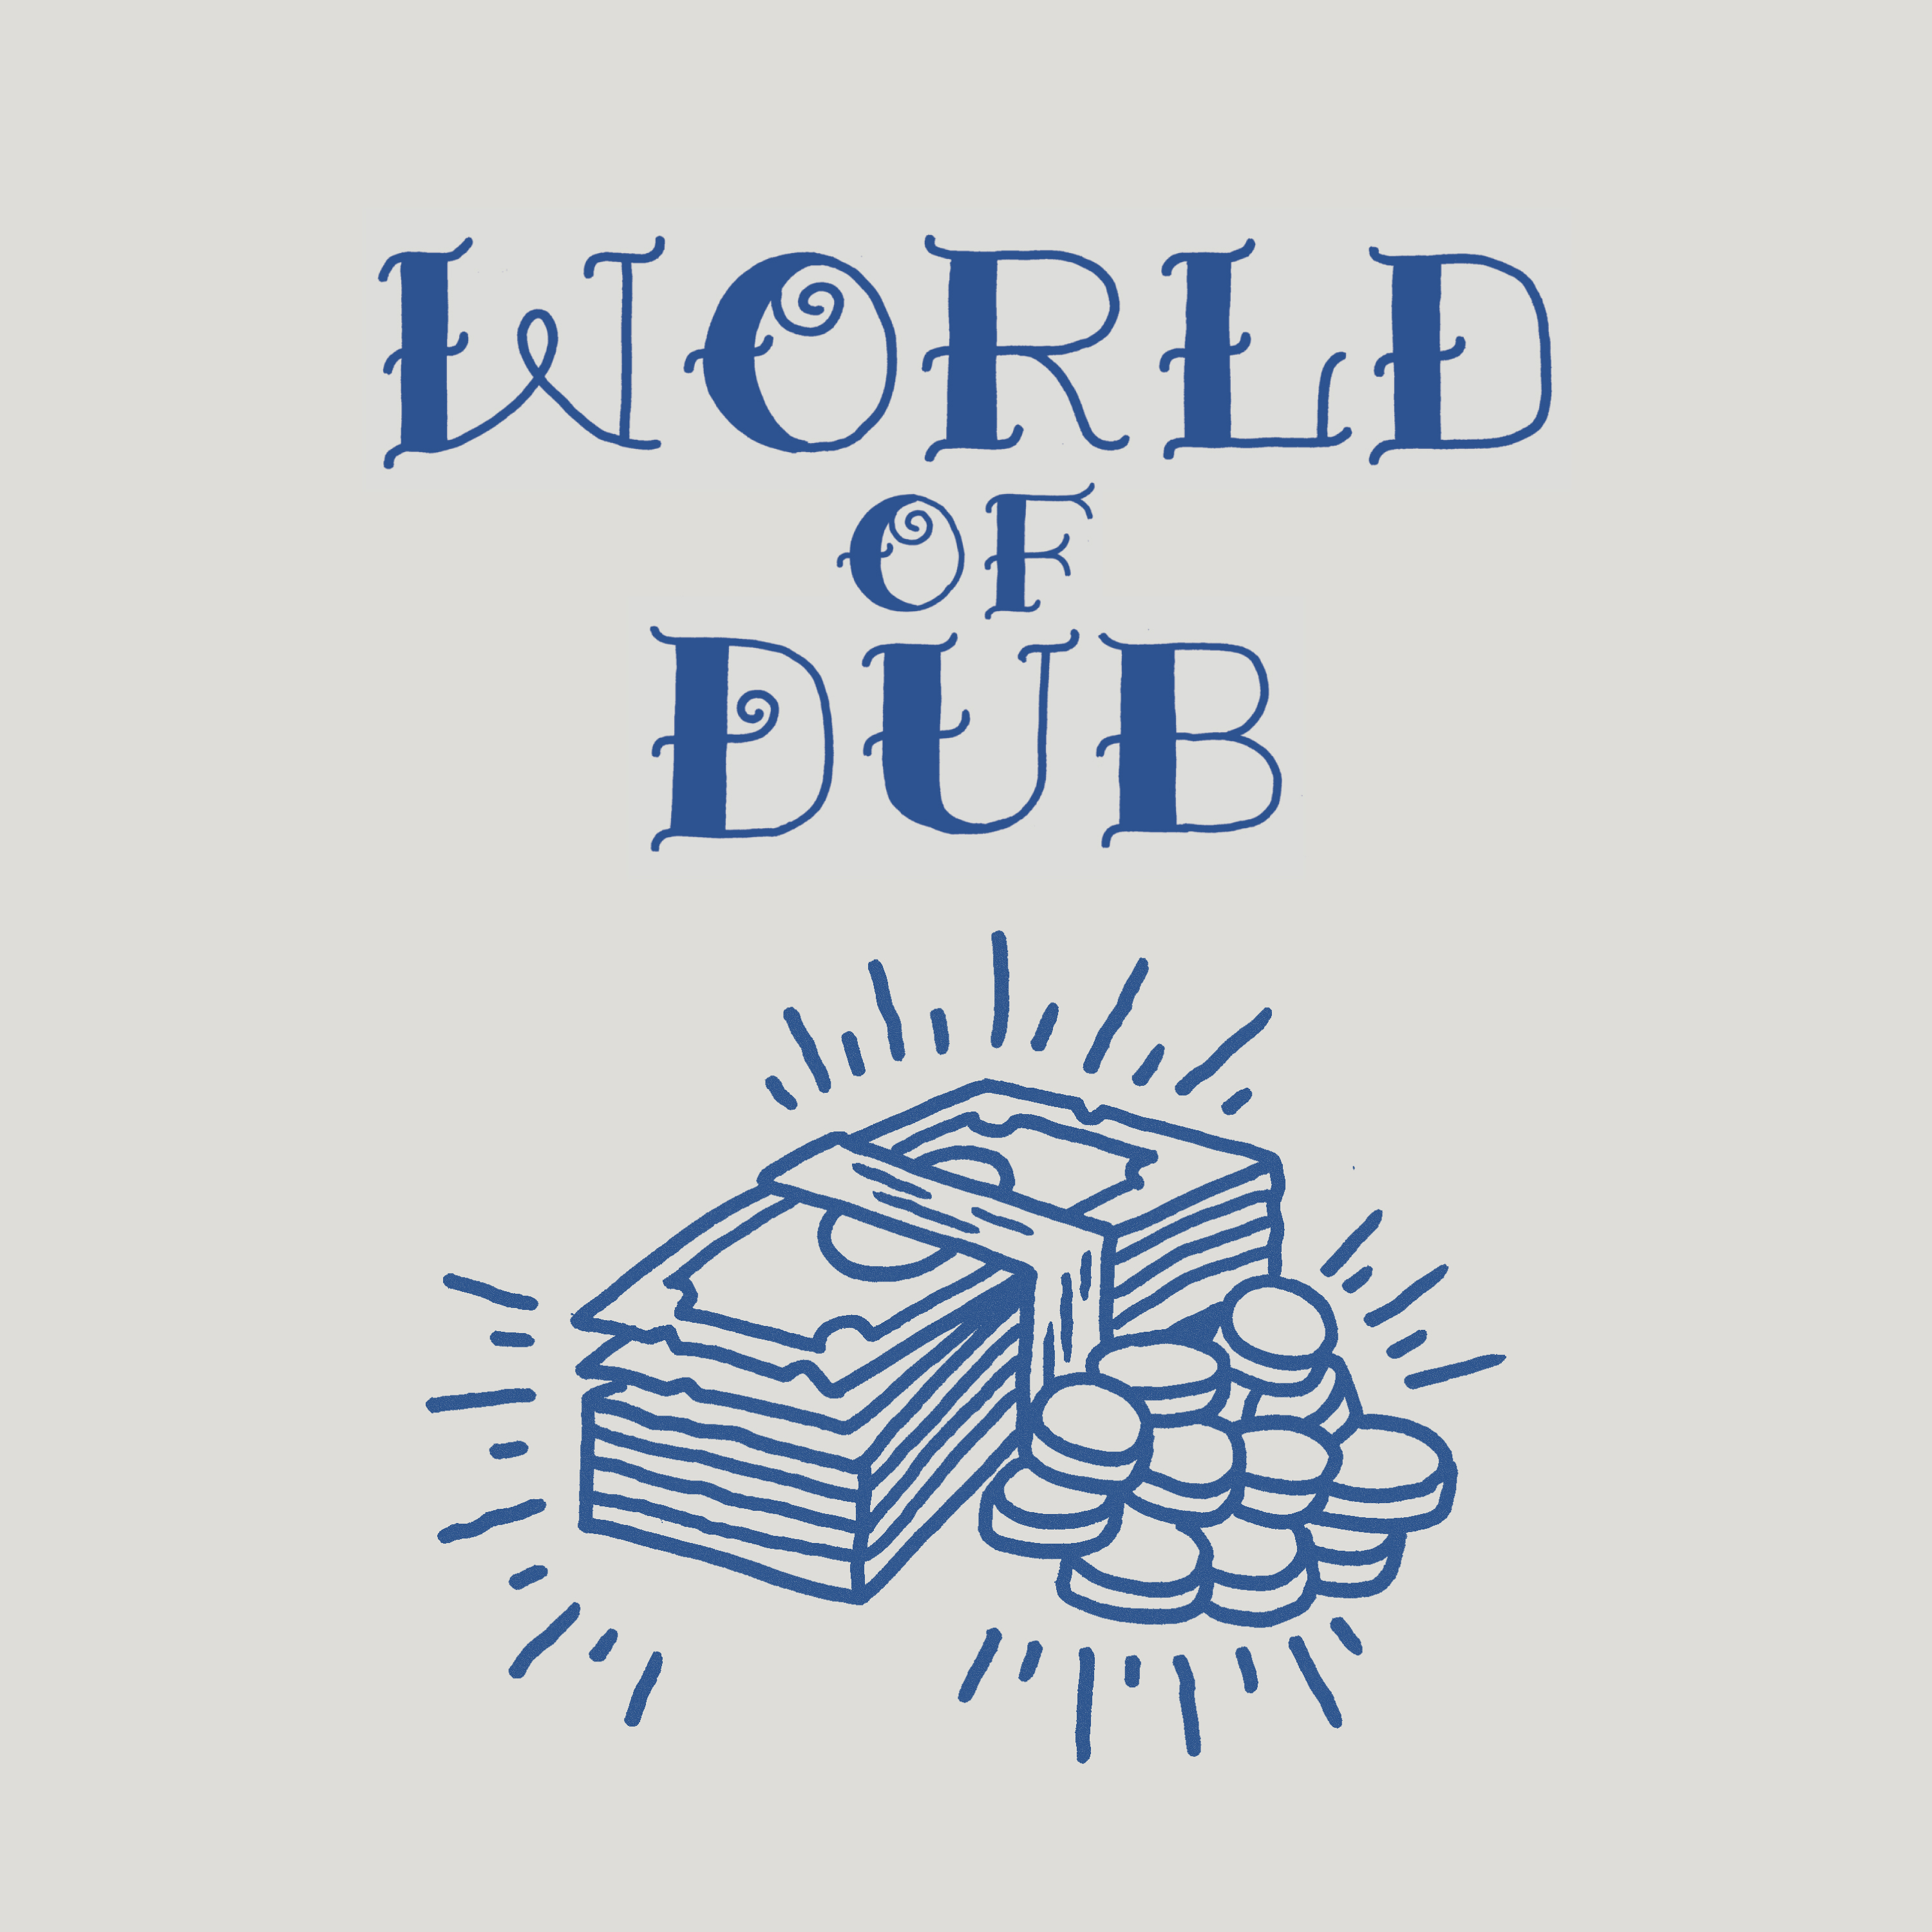 cover world of dub(1)